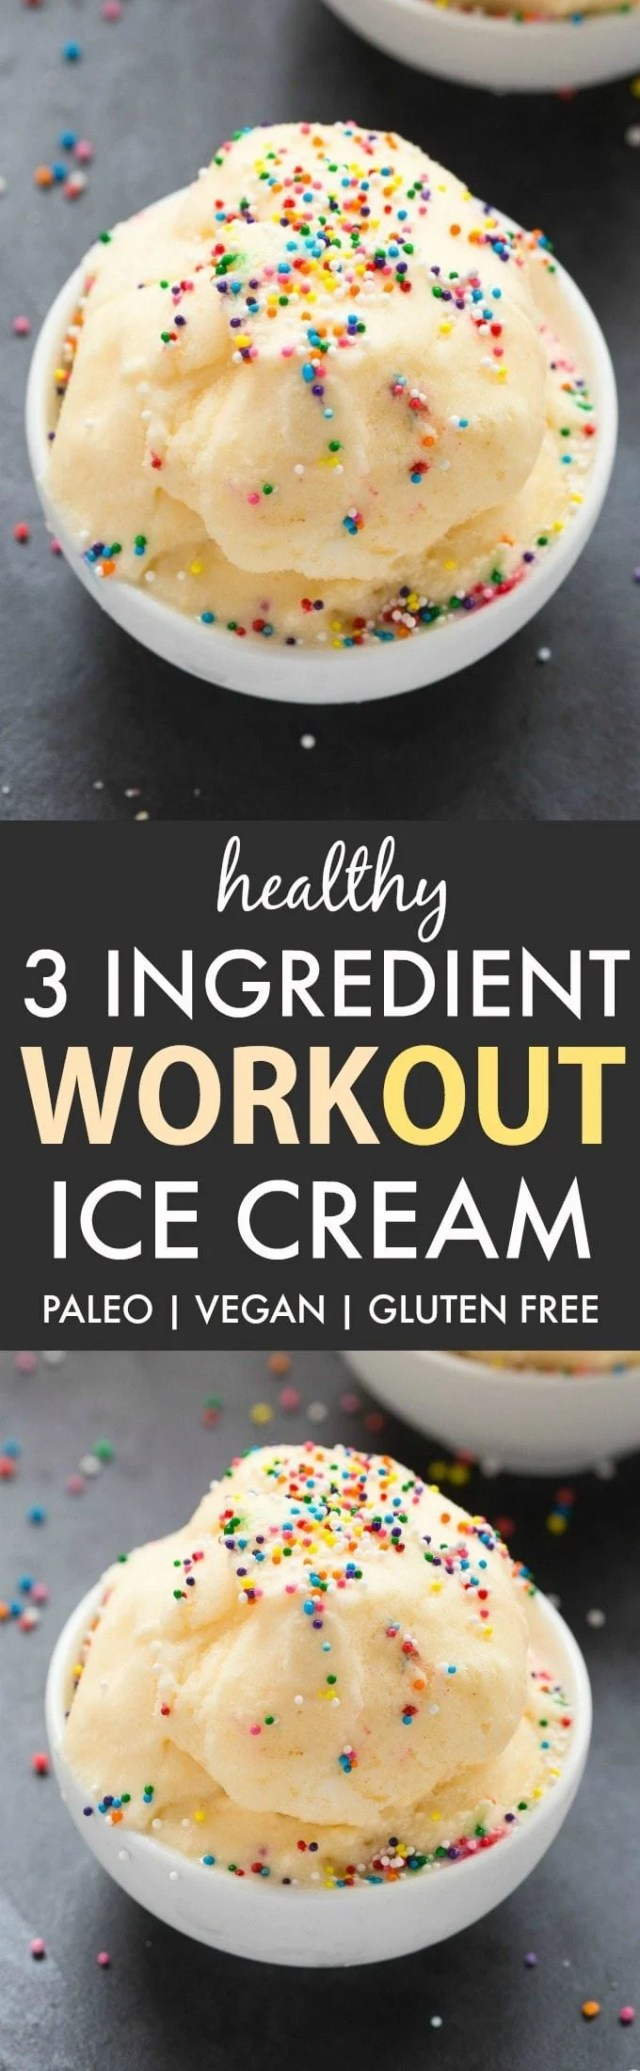 3 Ingredient No Churn Workout Ice Cream (V, GF, Paleo)- An easy and guilt-free 3 ingredient recipe for thick and creamy protein workout ice cream! {vegan, gluten free, dairy free, sugar free}- thebigmansworld.com